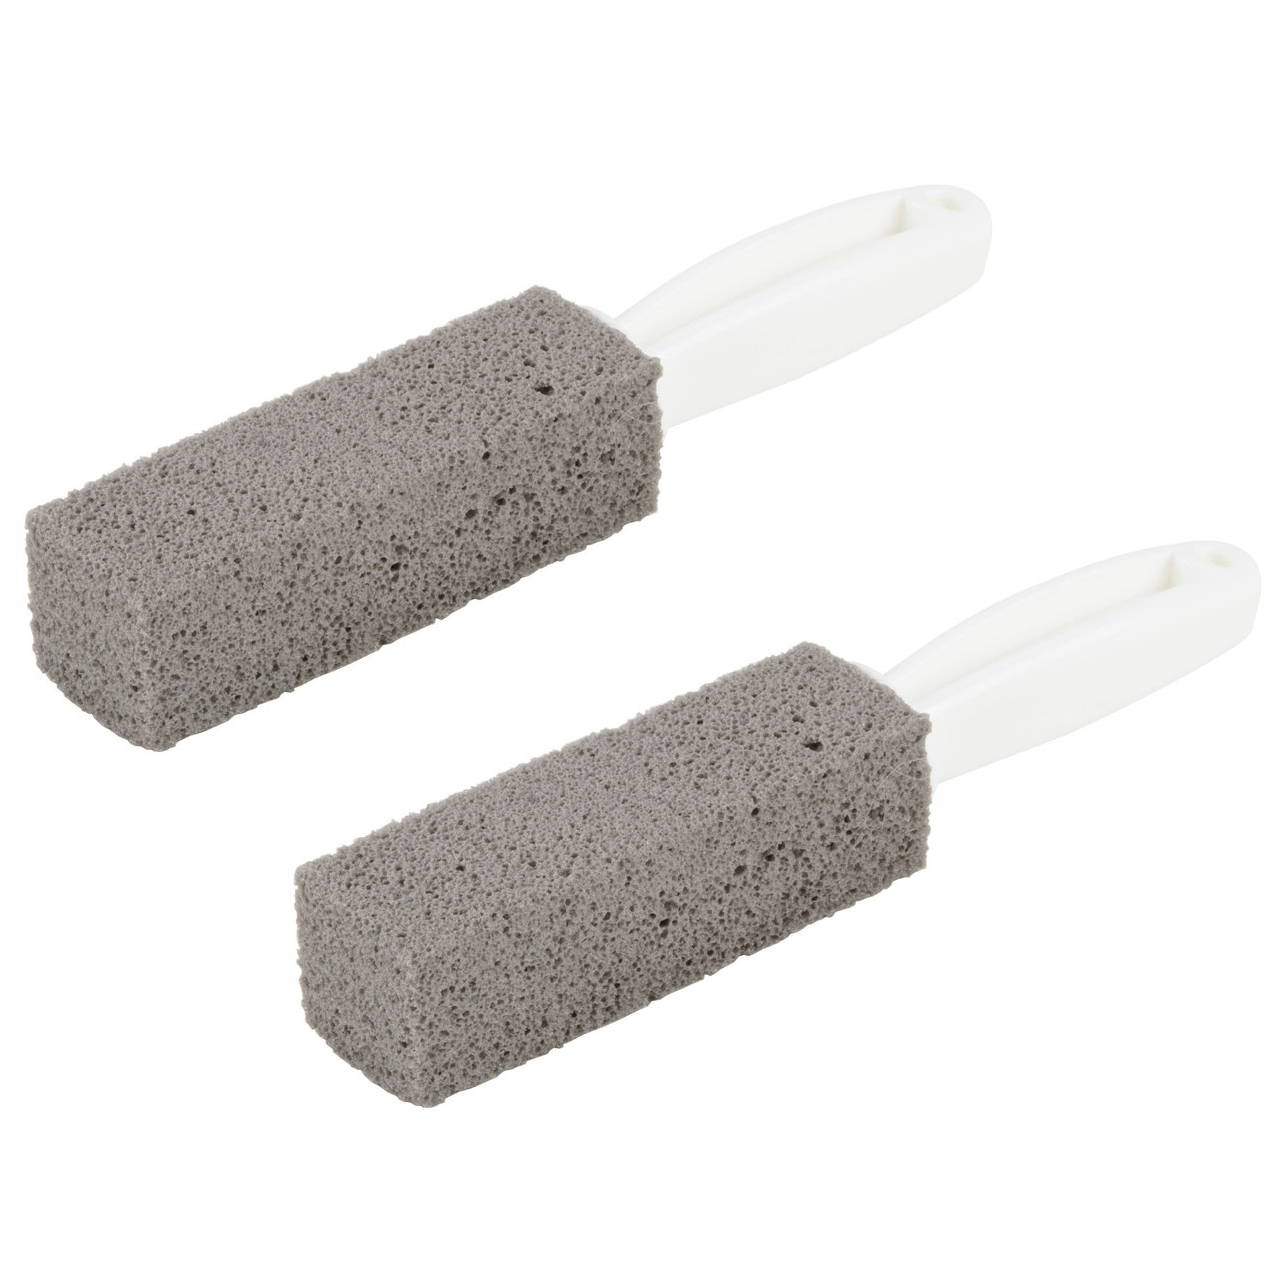 2 Pack Pumice Cleaning Stone With Handle Tanga